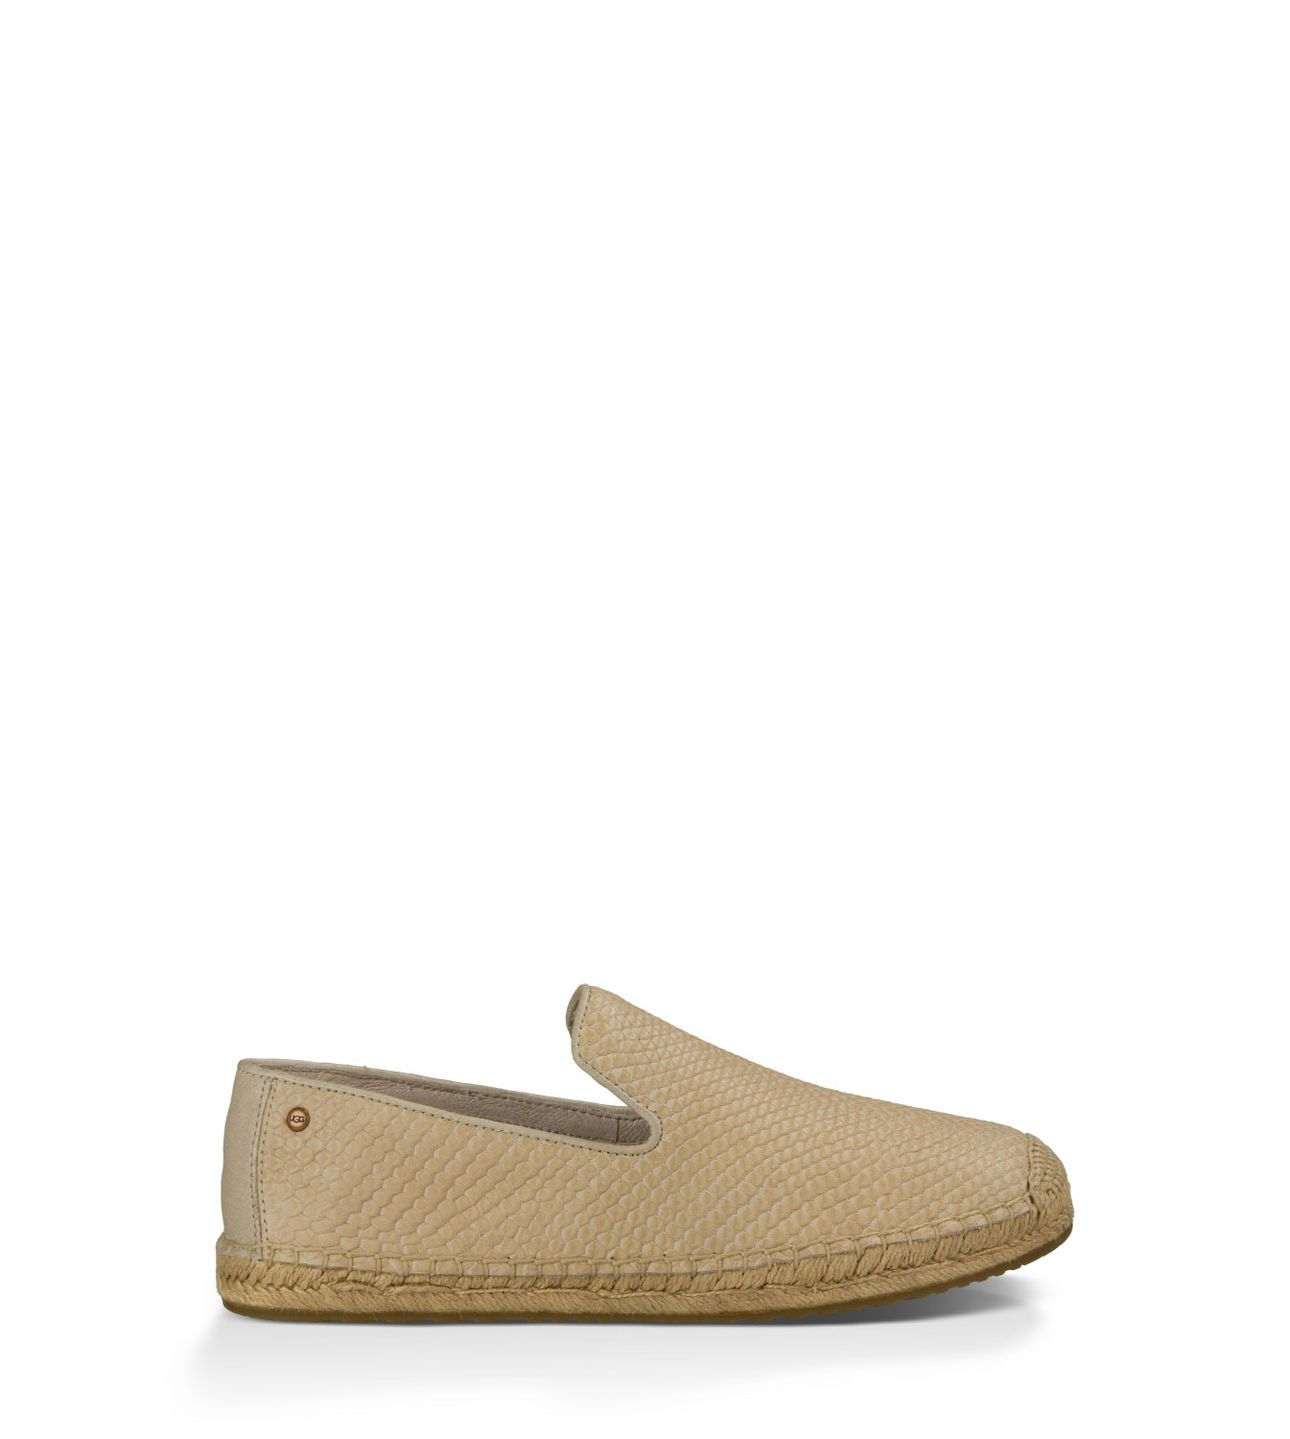 The classic espadrille has an exotic new look and UGG® comfort. Lightweight and perfect for warmer weather, the Sandrinne Snake features soft leather with embossed scales, a hand-constructed jute sole, and a soothing sheepskin heel counter lining.